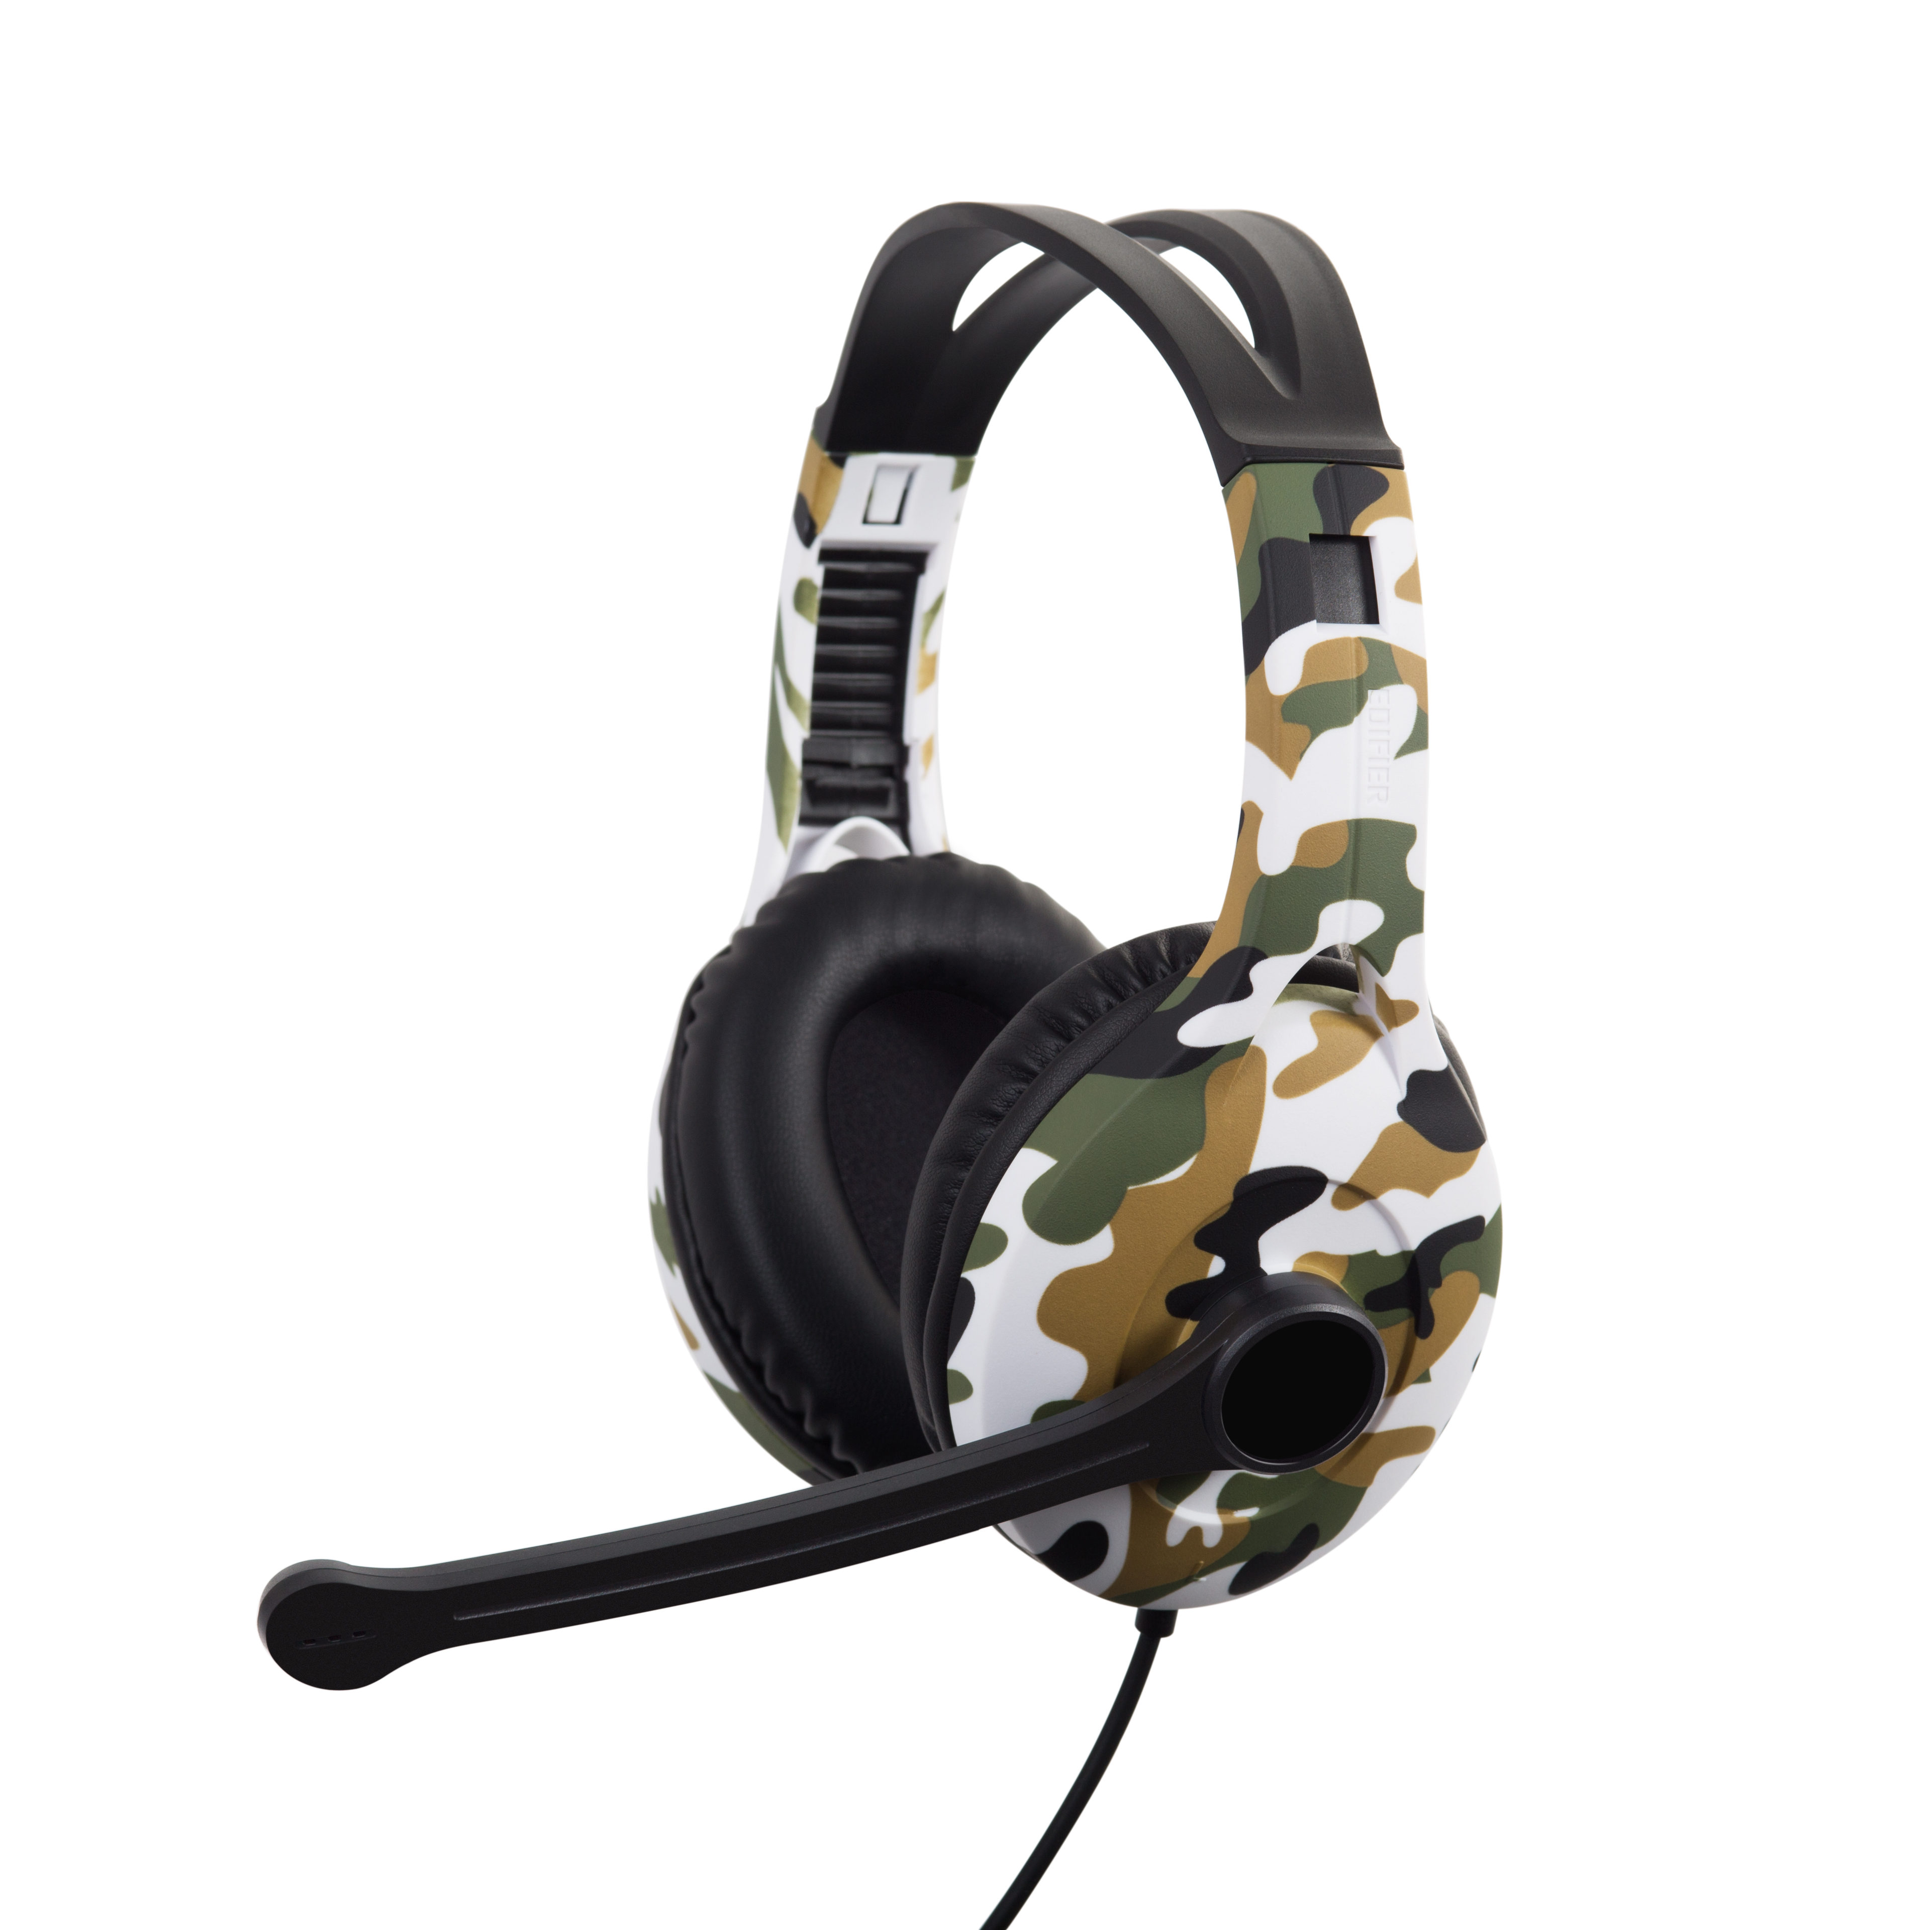 Edifier G10 is the entry range gaming headphone from Edifier.